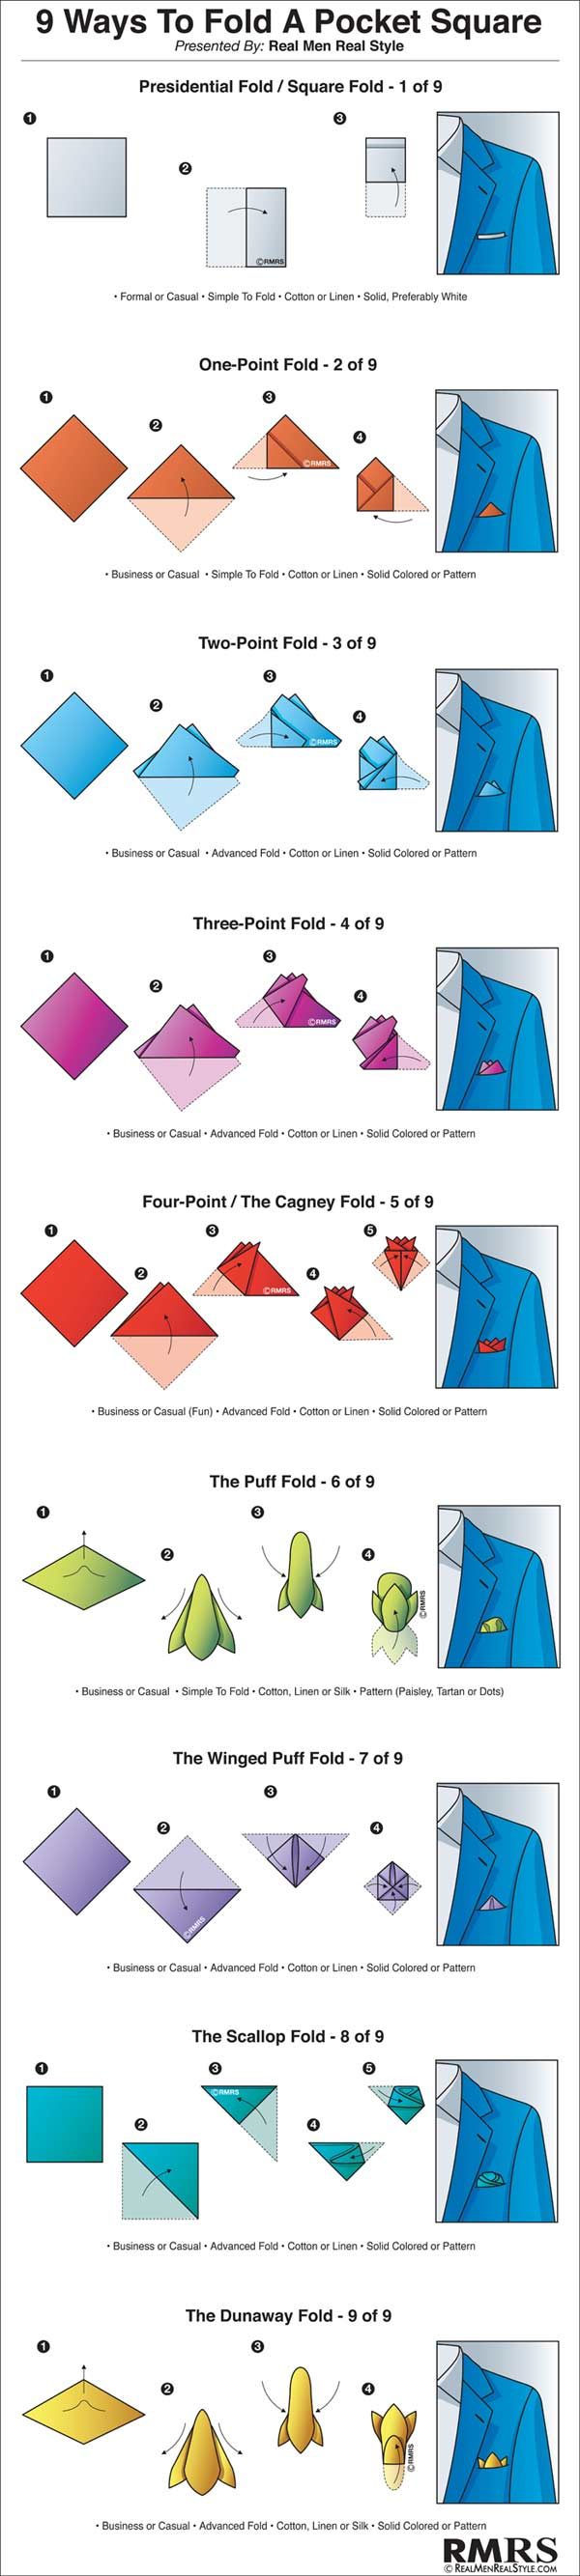 9-Ways-To-Fold-A-Pocket-Square-Infographic-600.jpg